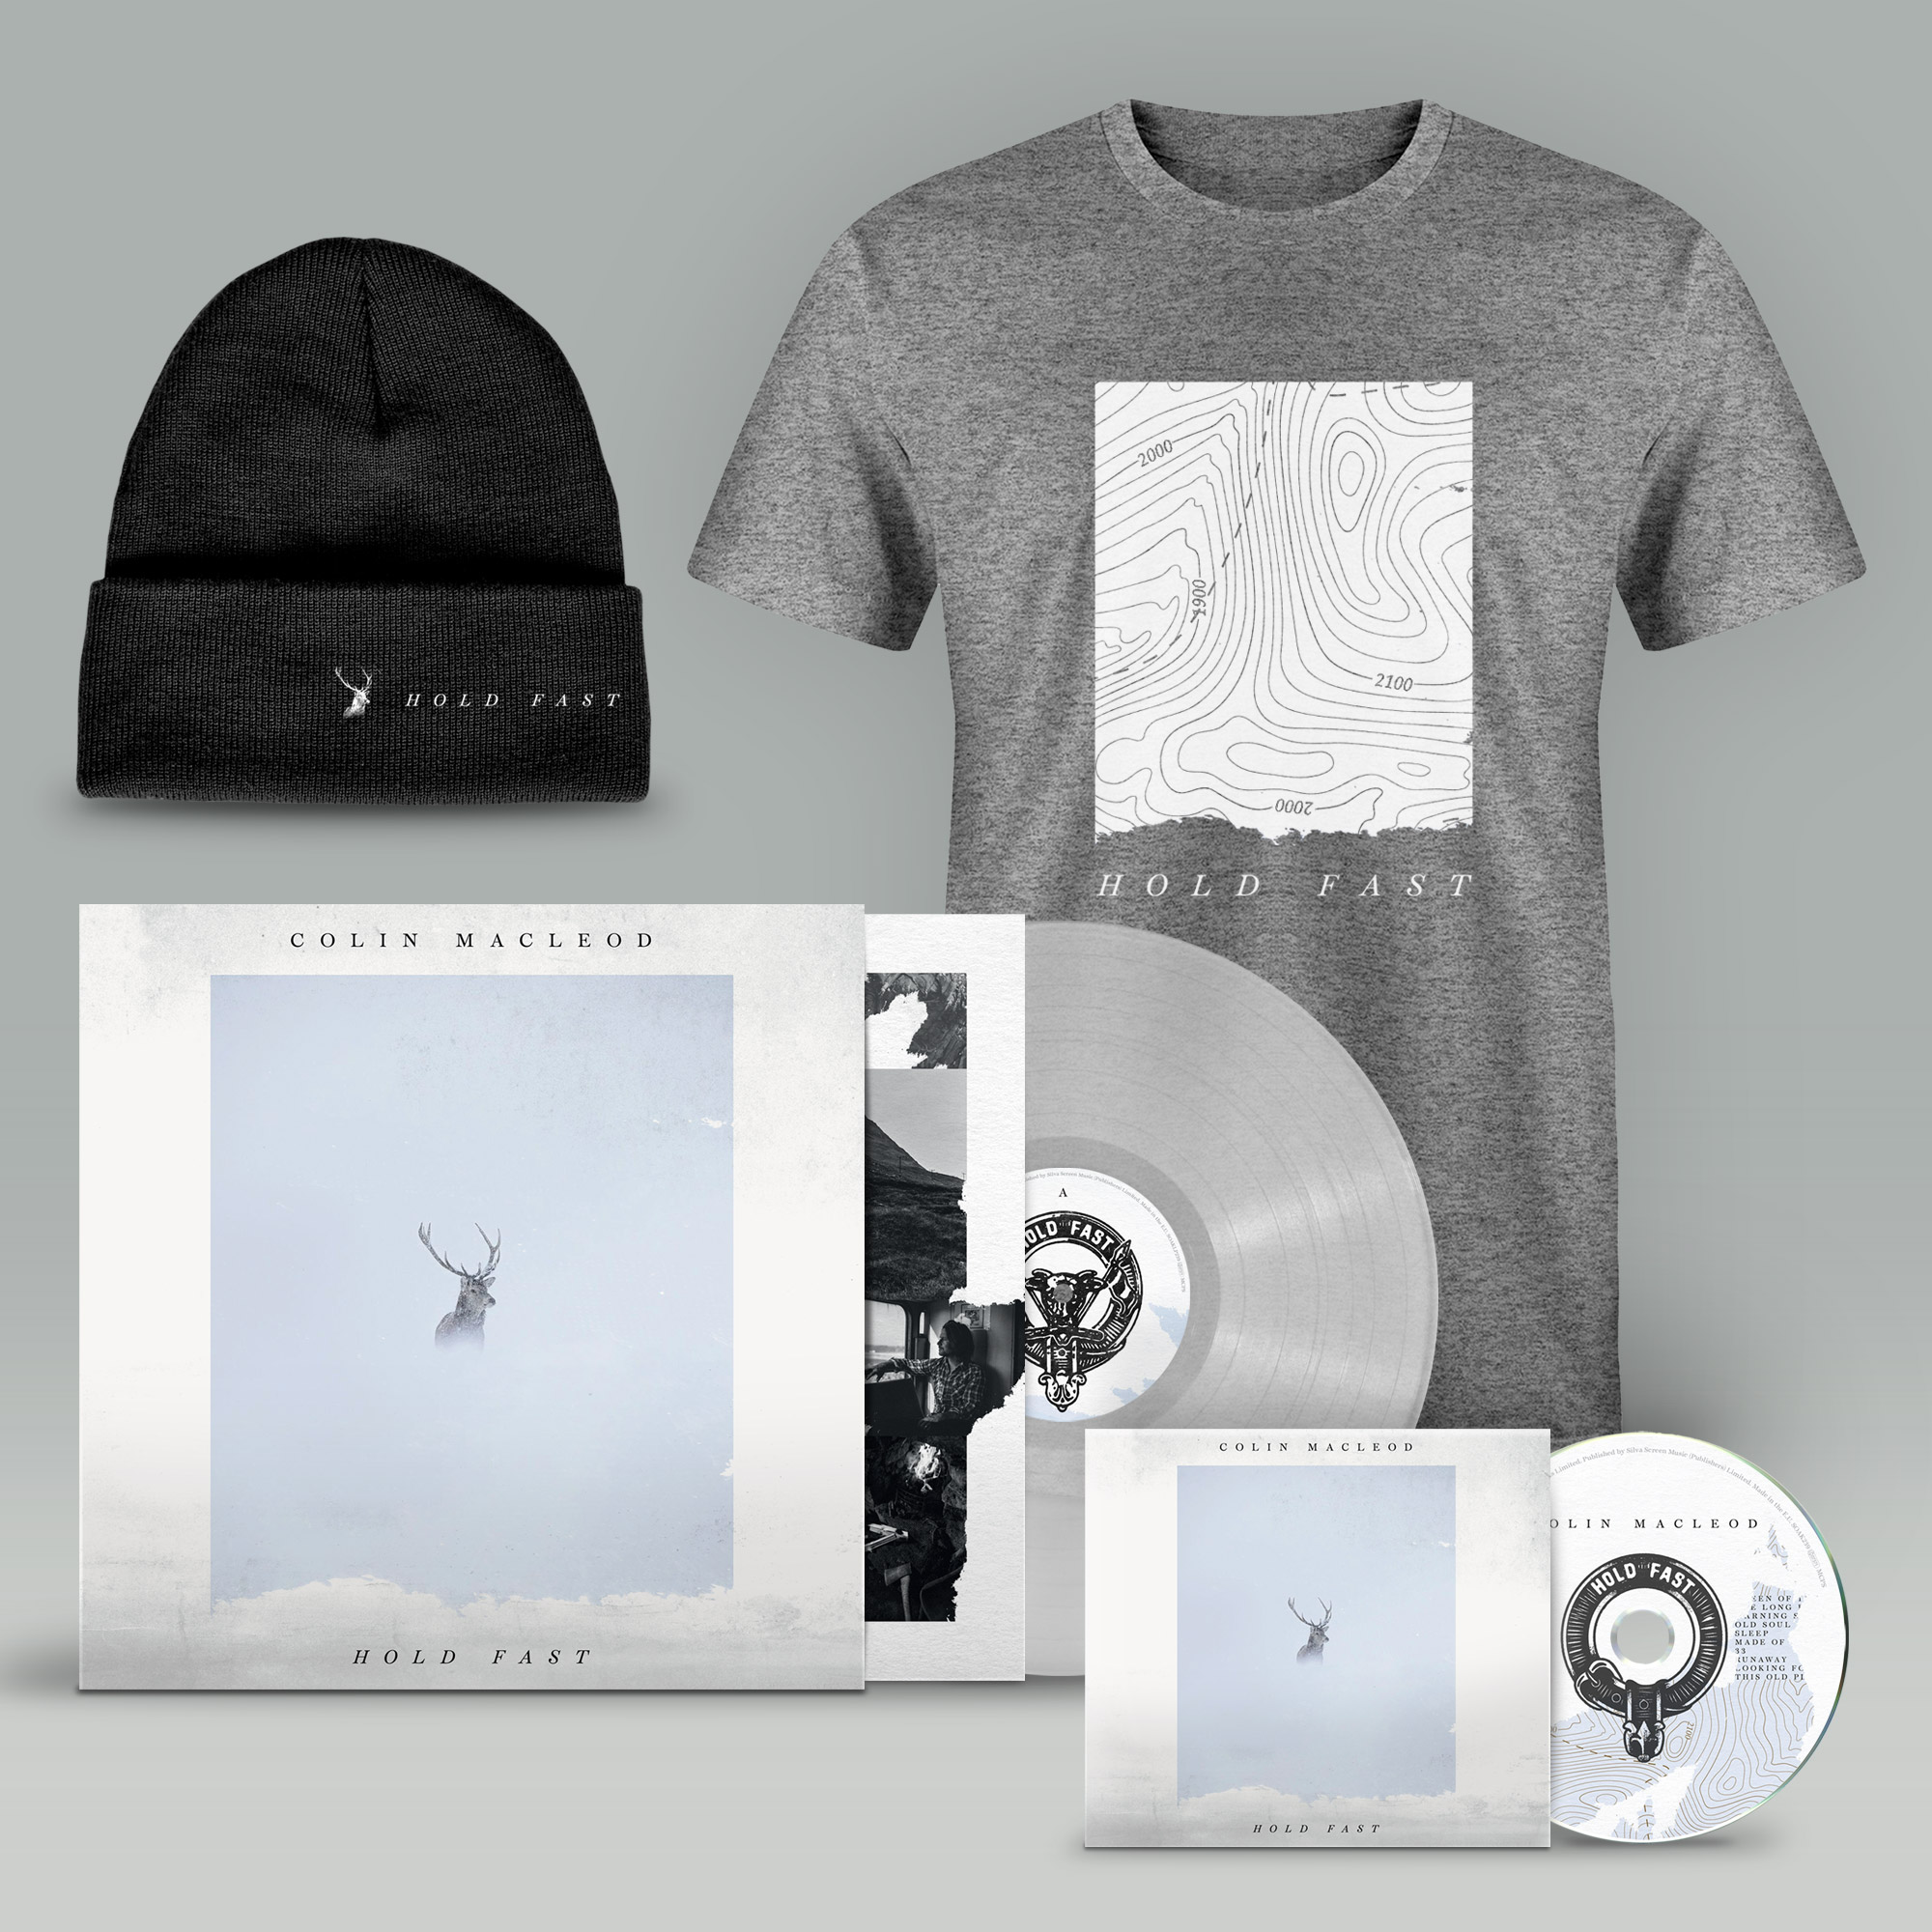 Buy Online Colin Macleod - Hold Fast CD (Signed) + Transparent Vinyl (Signed) + T-Shirt + Beanie